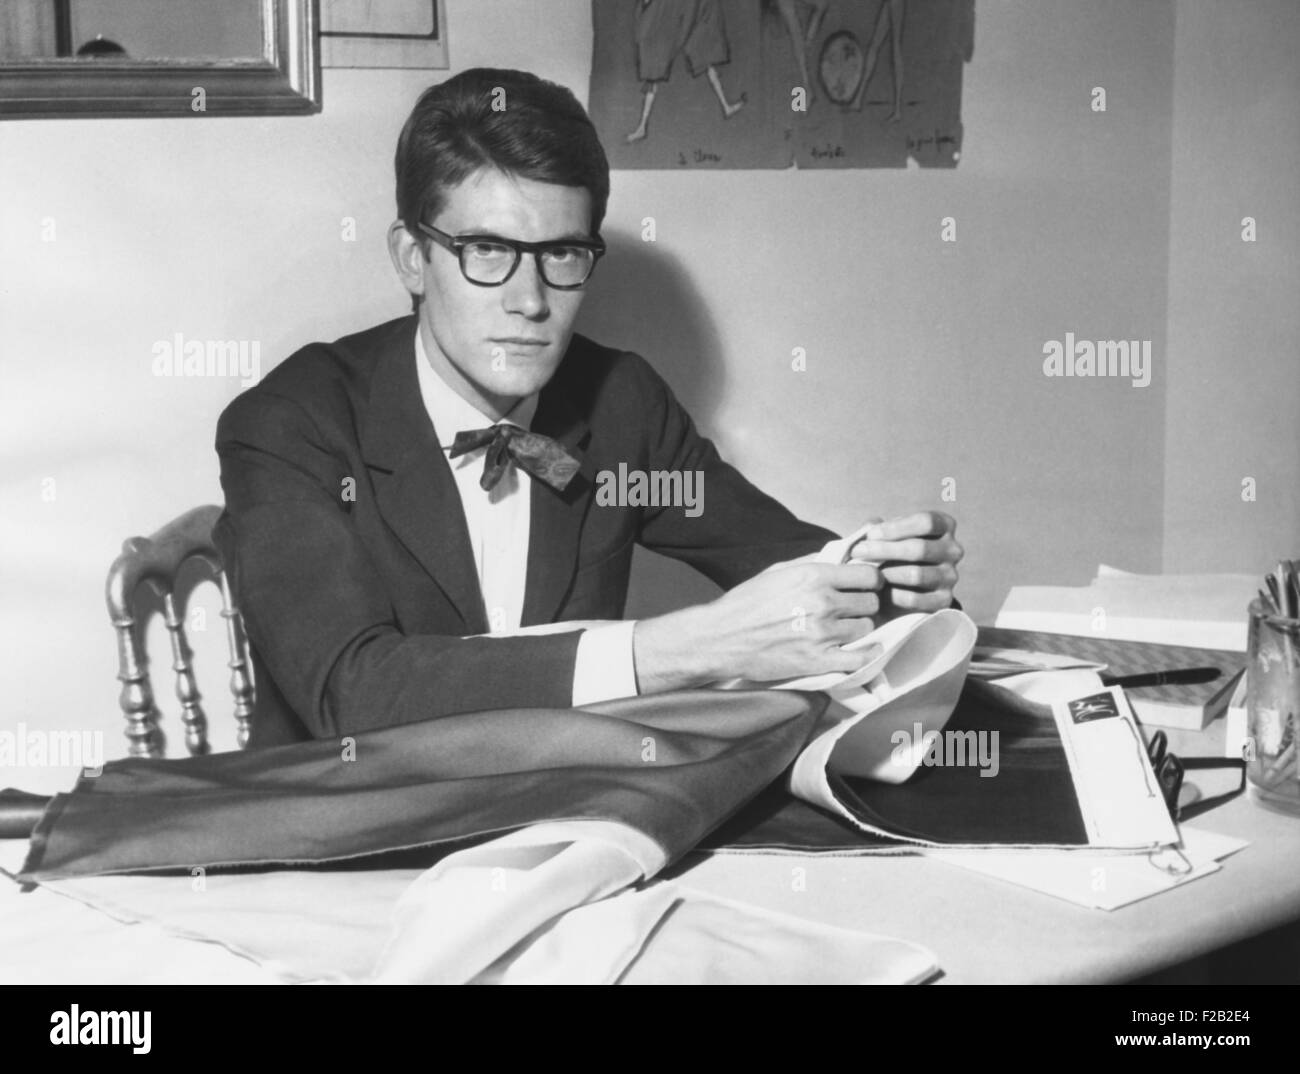 Yves Saint Laurent opened his couture fashion house in Paris in 1961. House of Yves Saint Laurent presented its - Stock Image